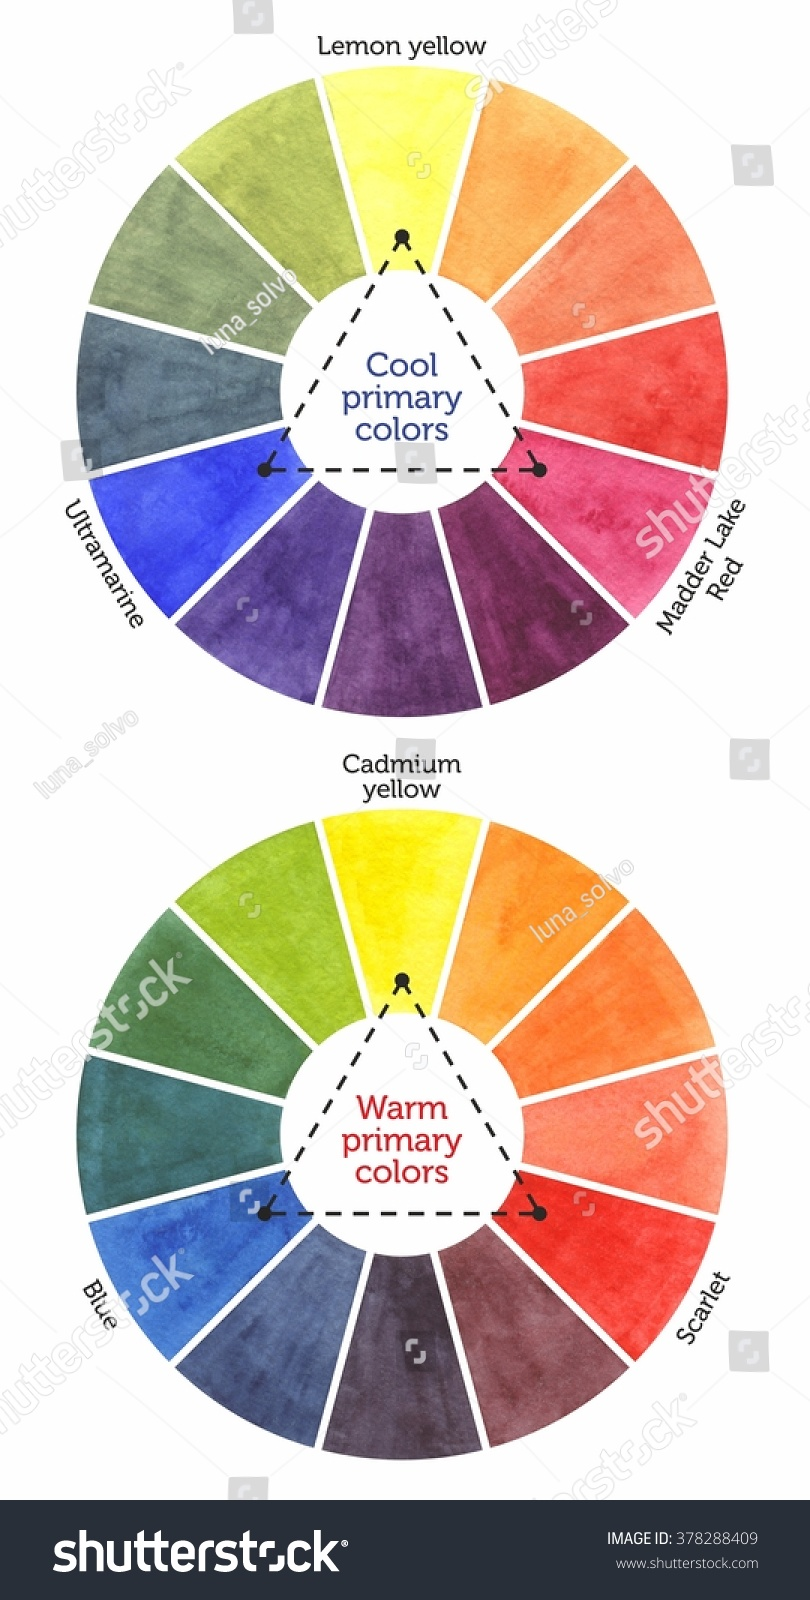 Color mixing chart watercolor painting primary stock illustration color mixing chart for watercolor painting primary colors nvjuhfo Gallery